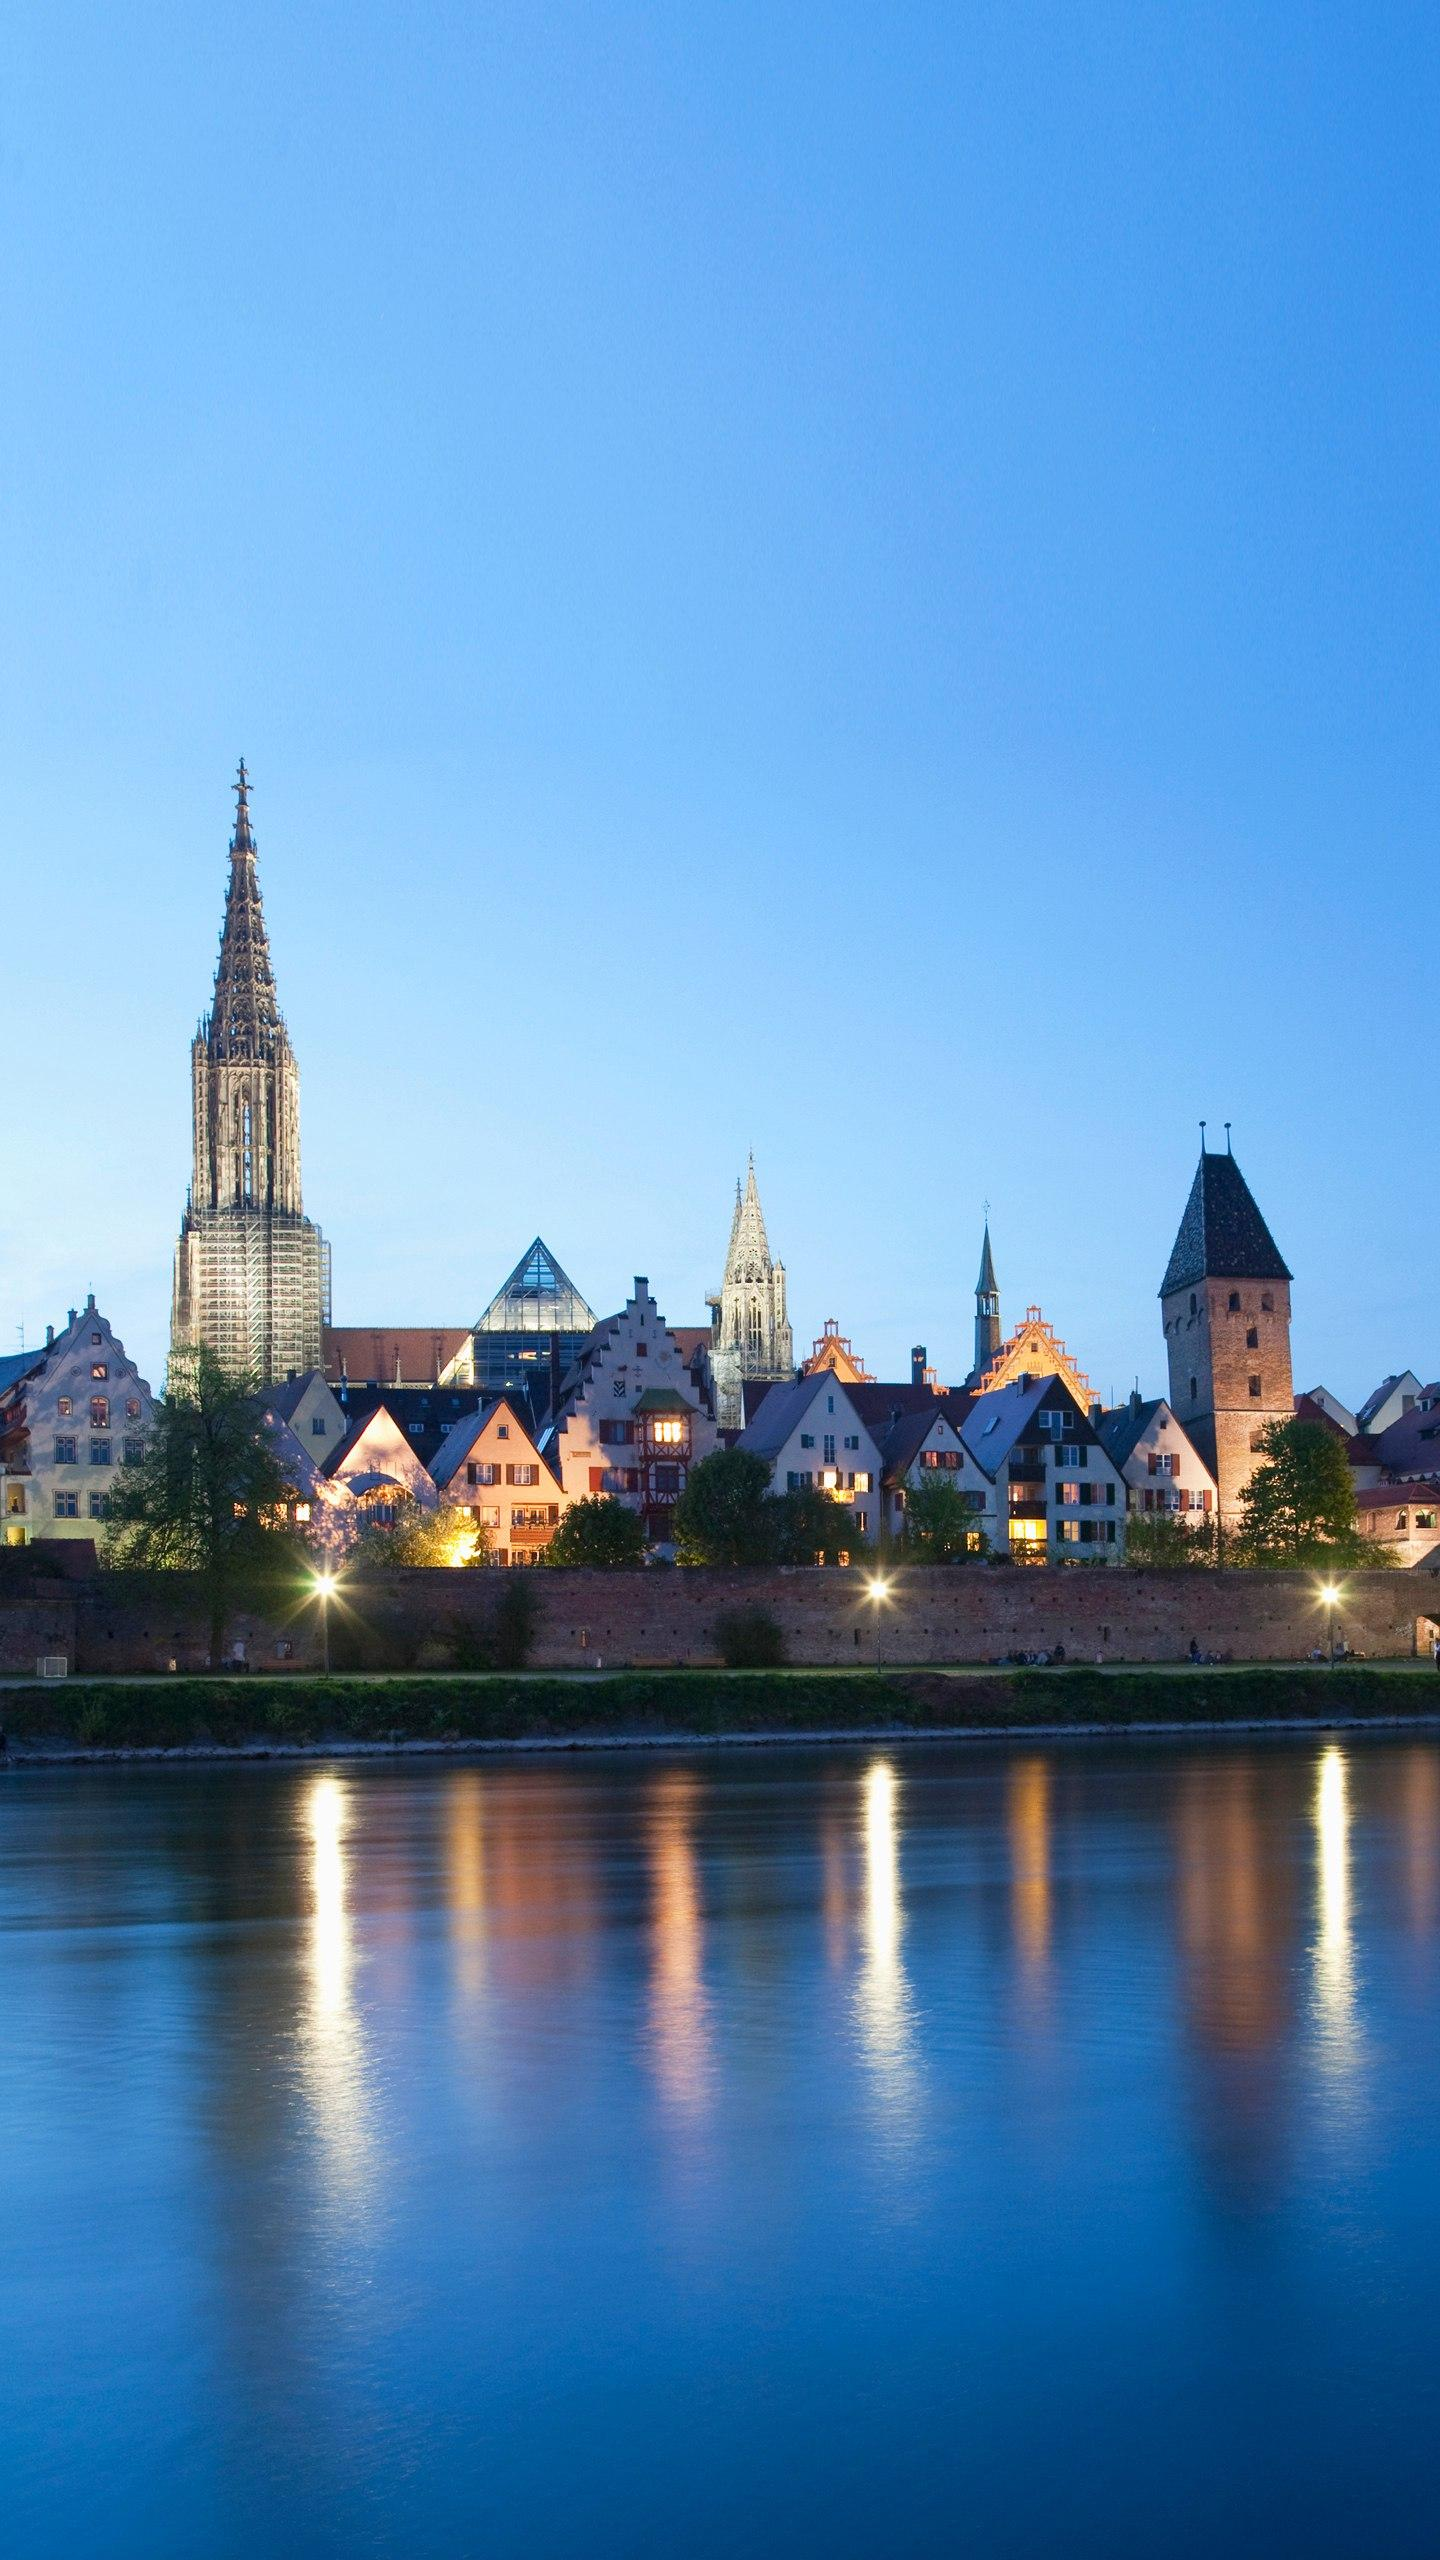 Germany - Ulm. A quiet and quiet town on the Danube River is also the birthplace of Einstein.